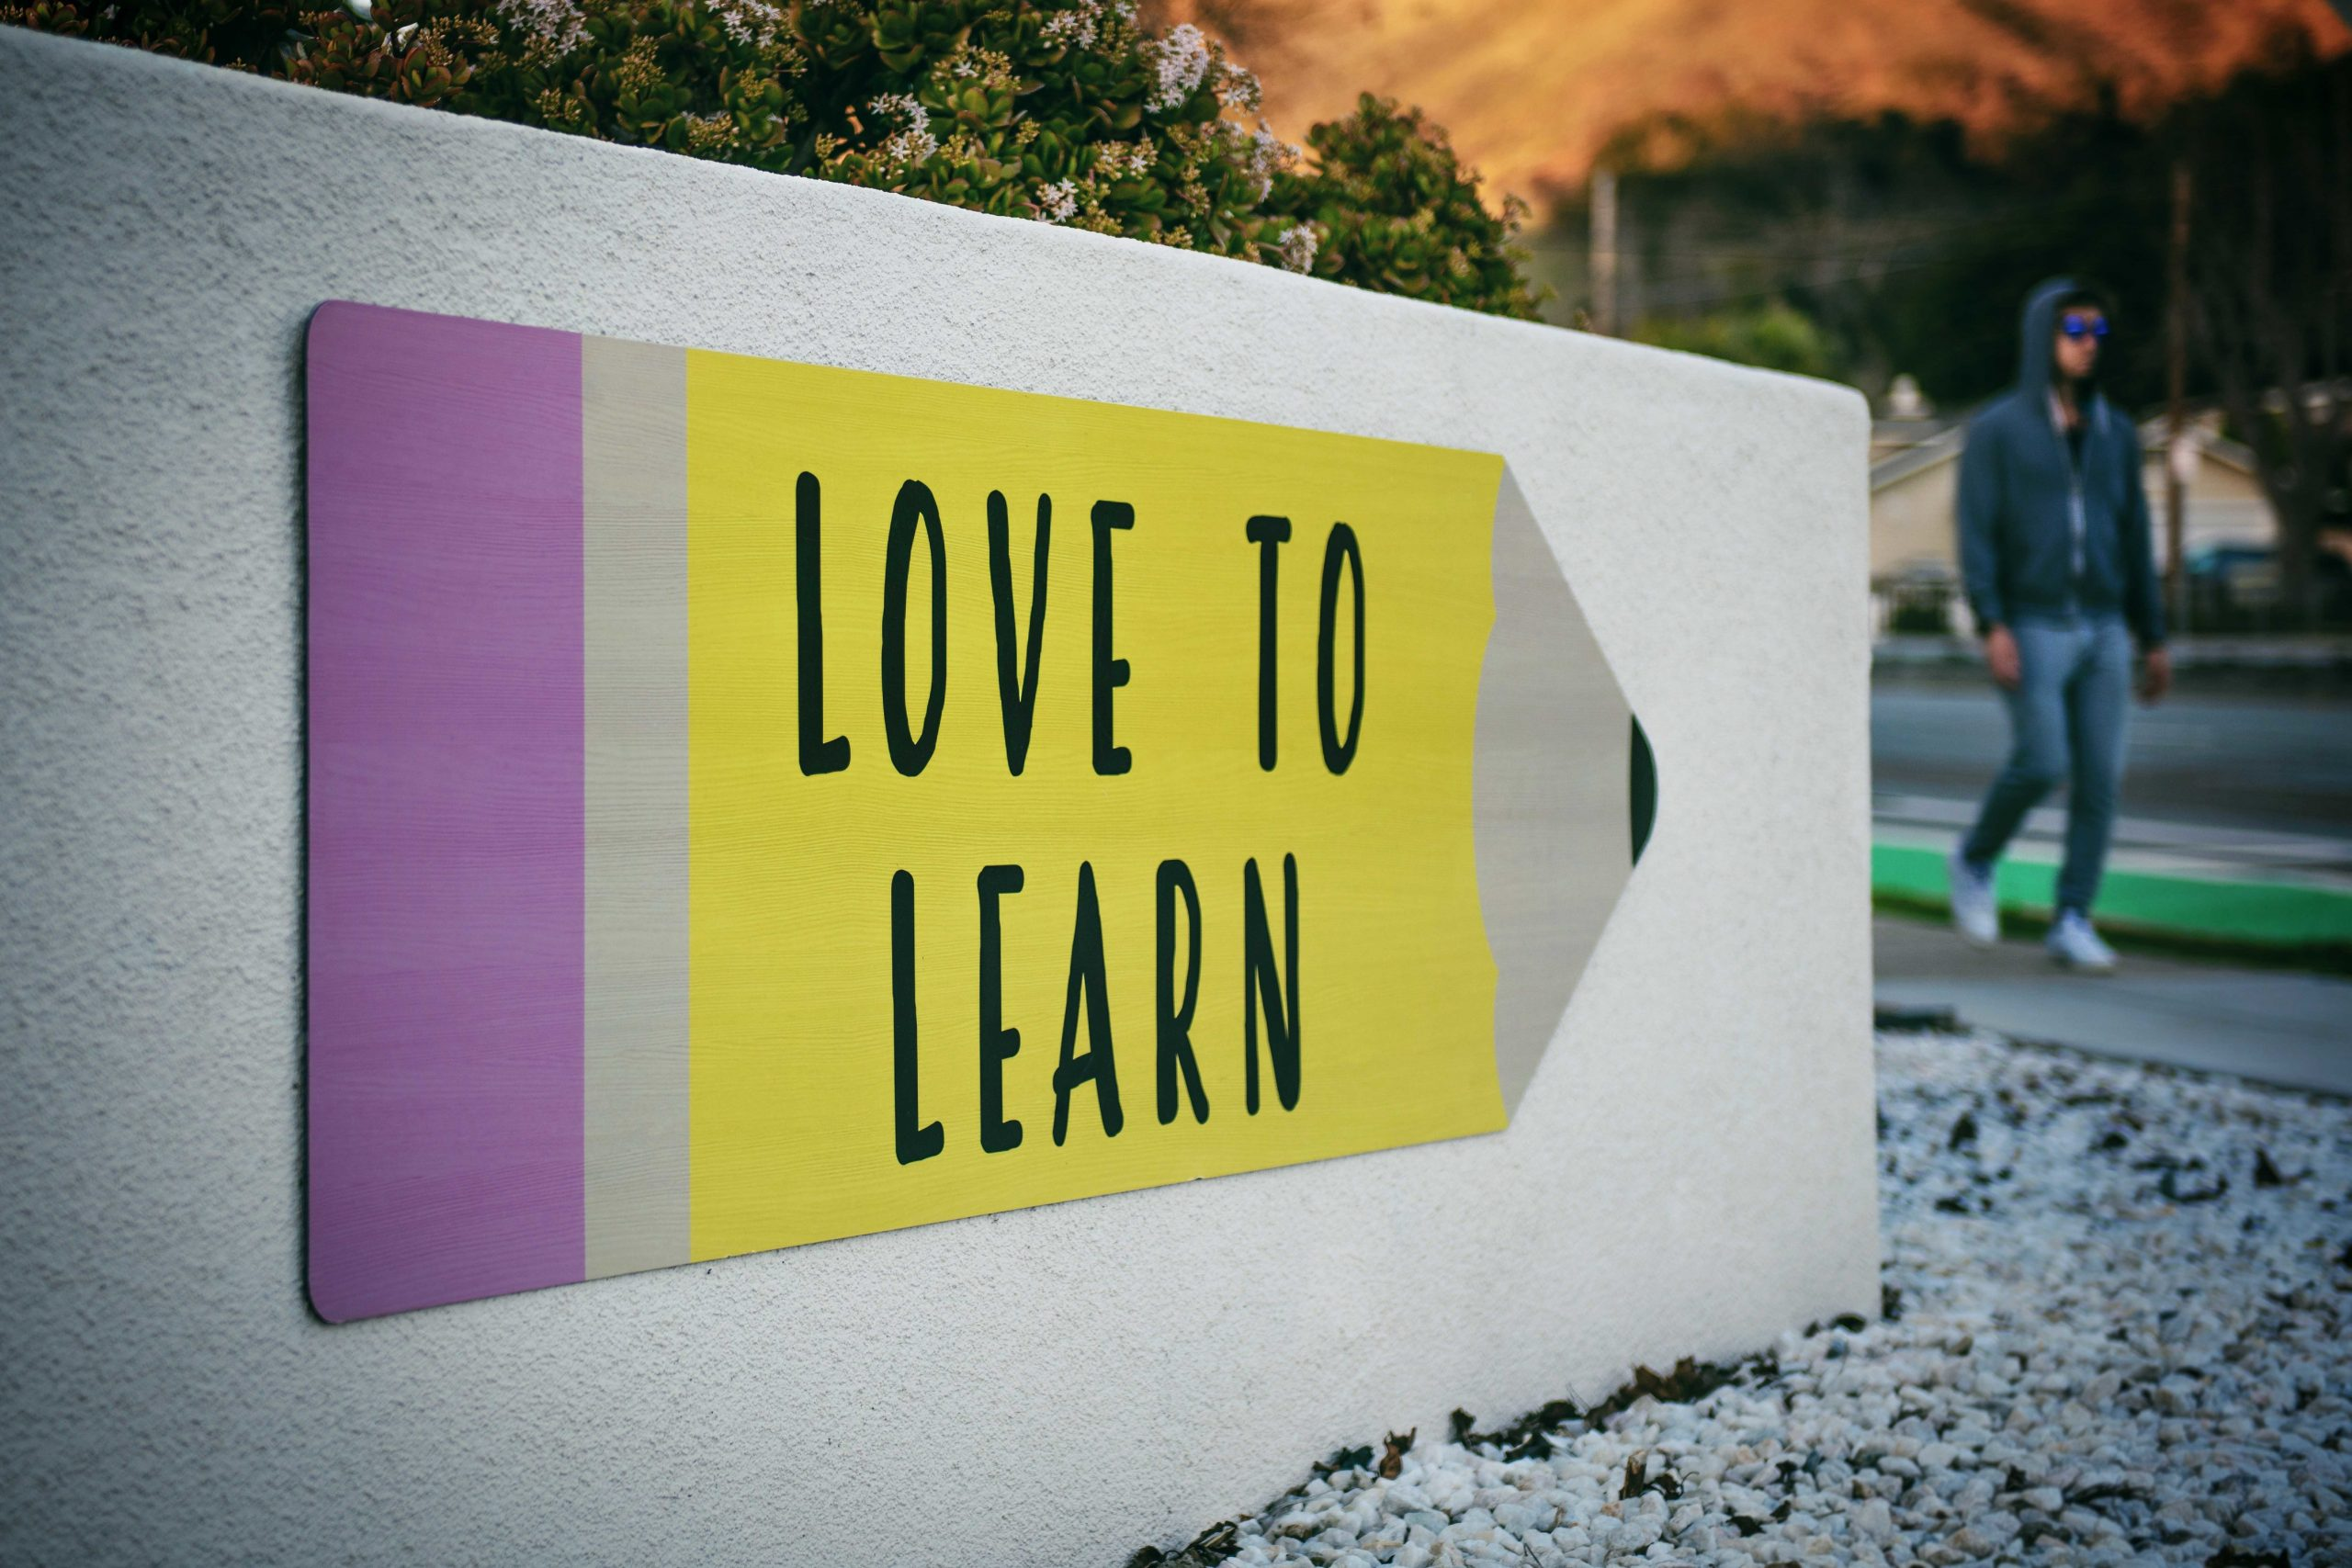 love-to-learn-blog-angry-ventures-tim-mossholder-unsplash